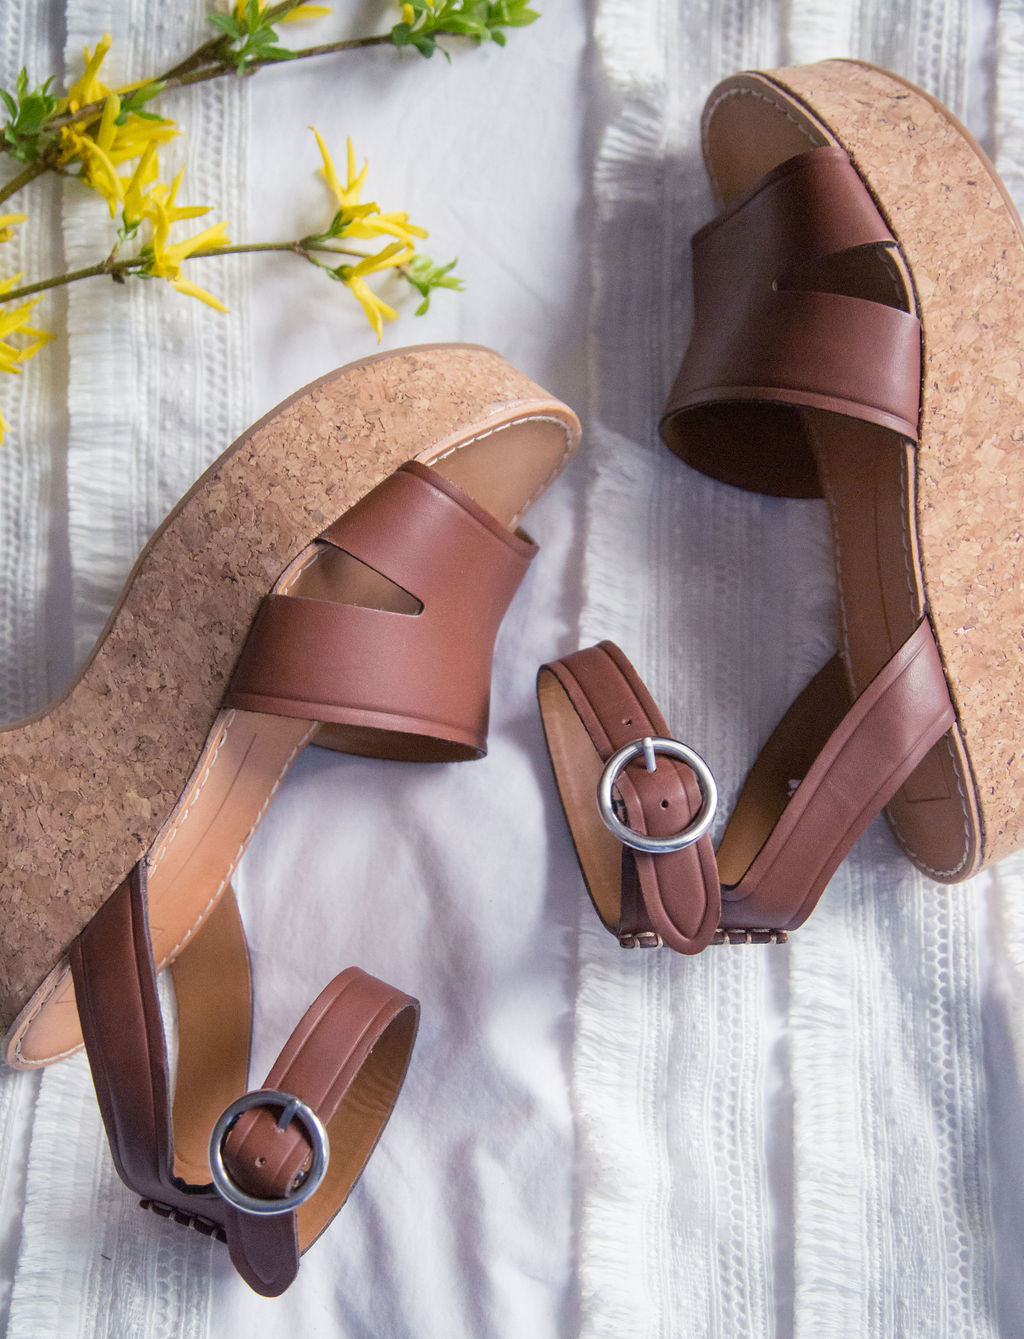 NEW Cork Wedge Platform Sandals